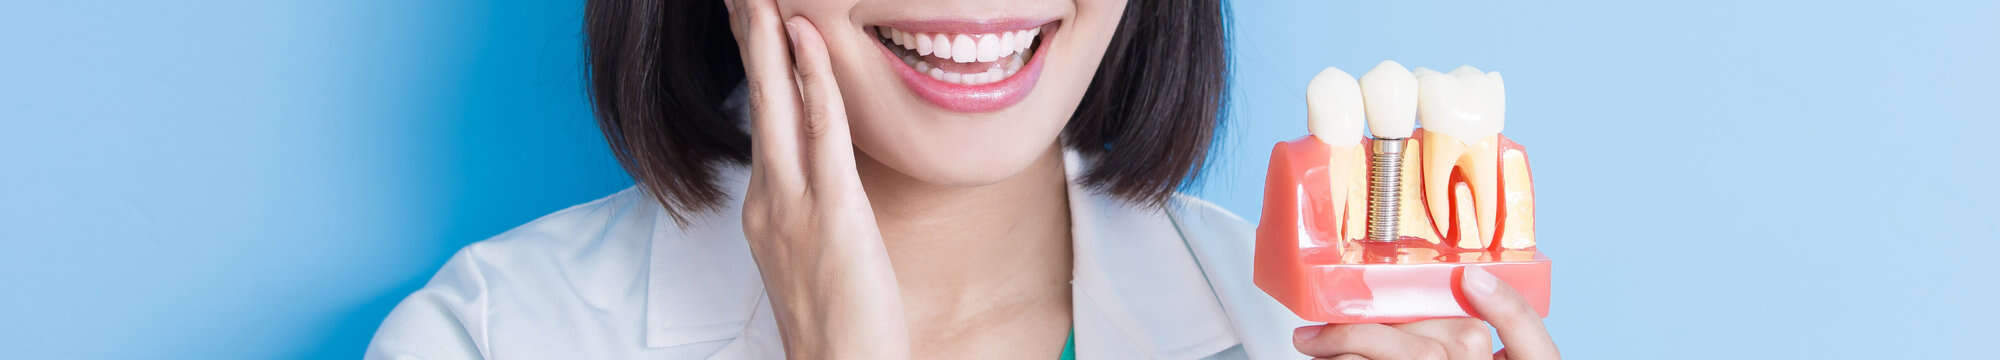 woman dentist taking implant tooth